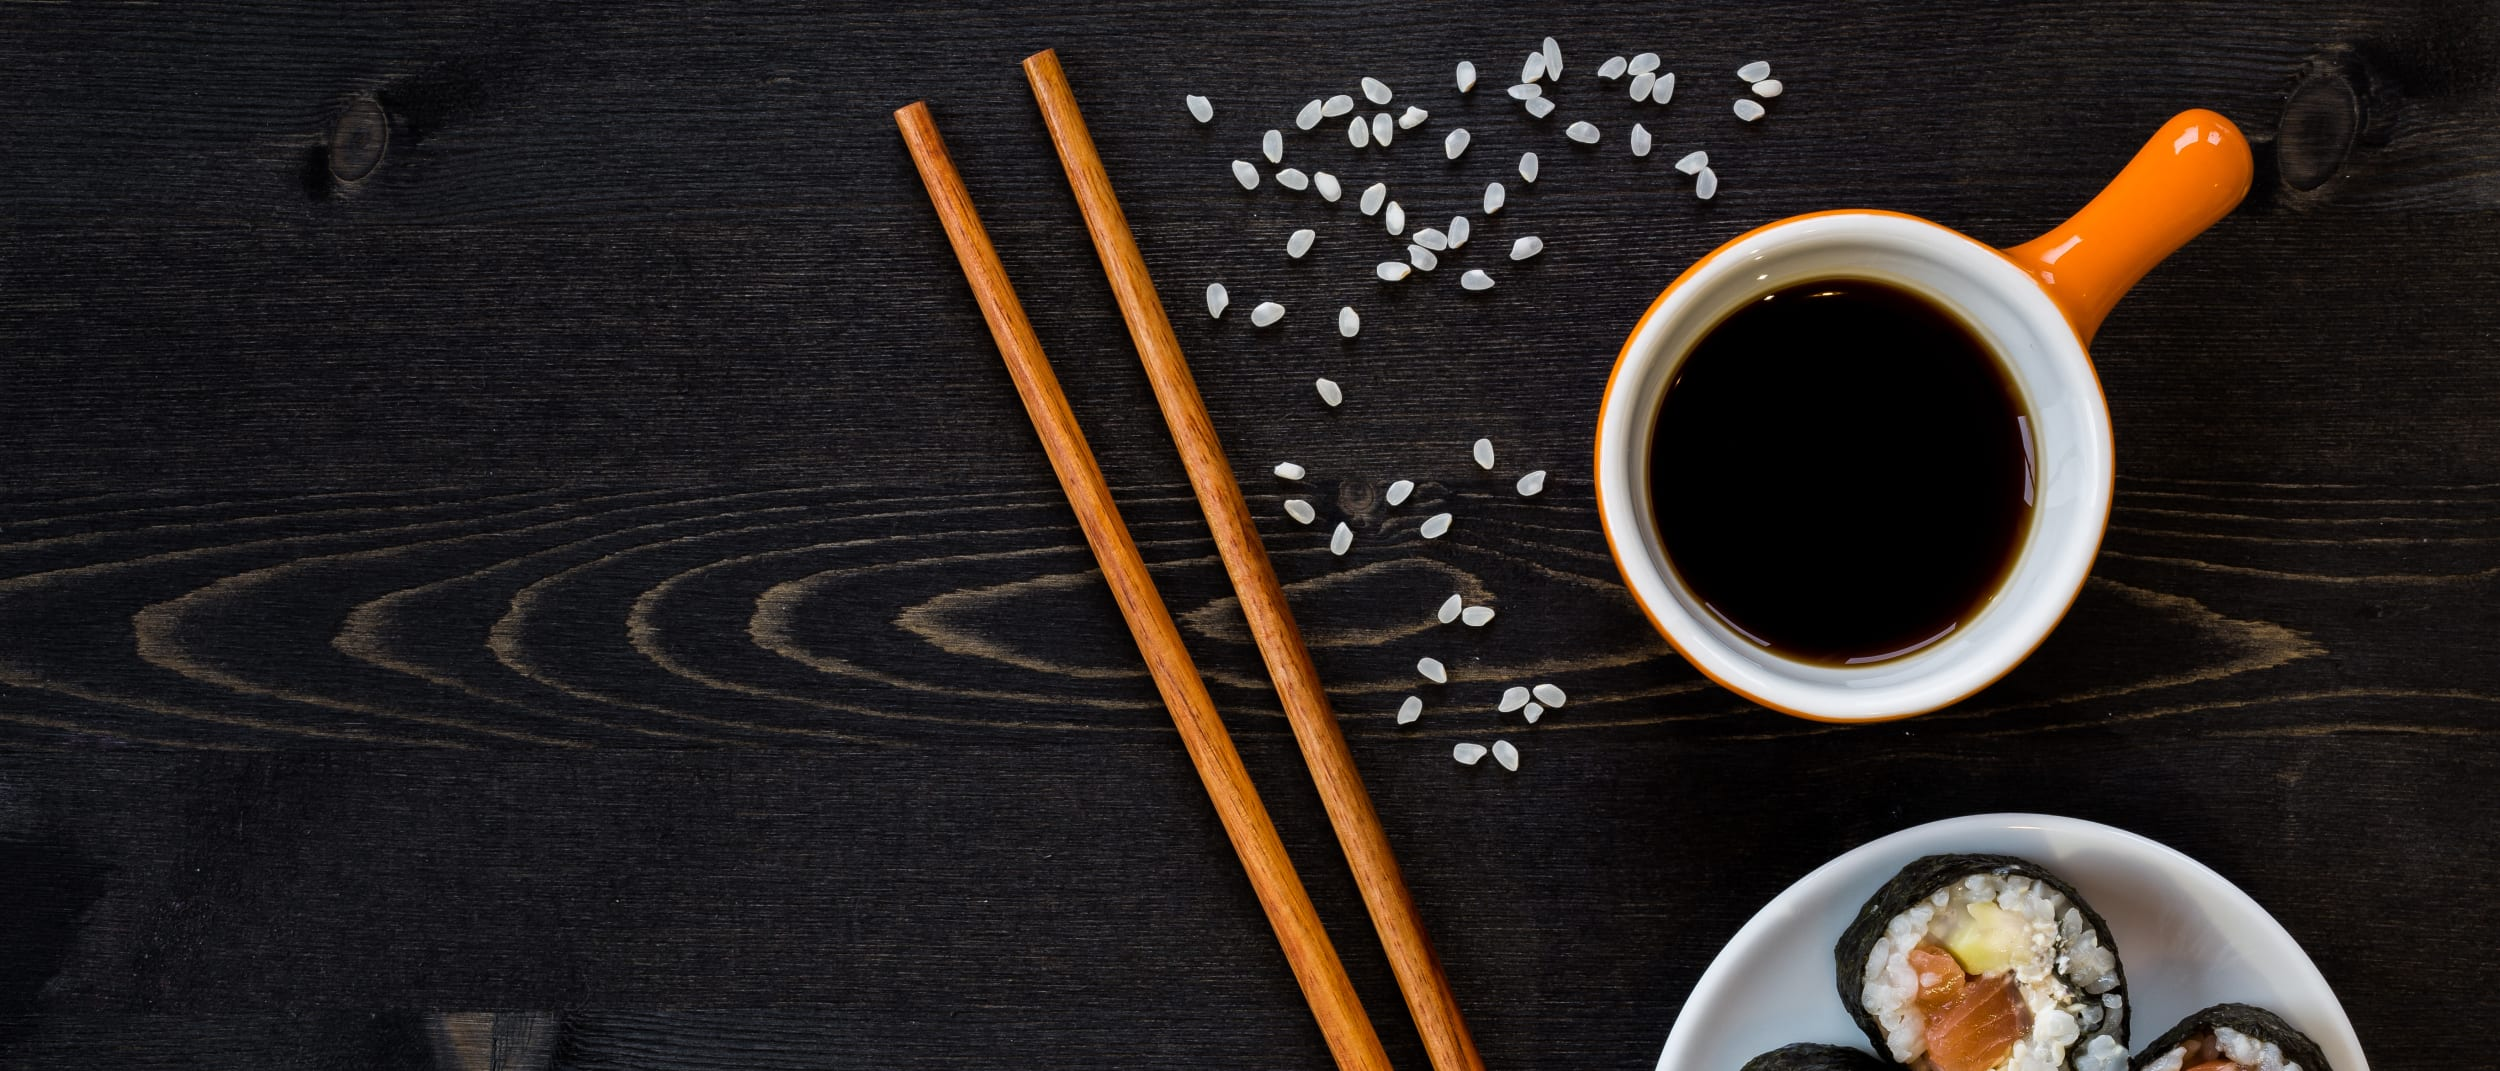 black background with sushi, chopsticks and soy sauce